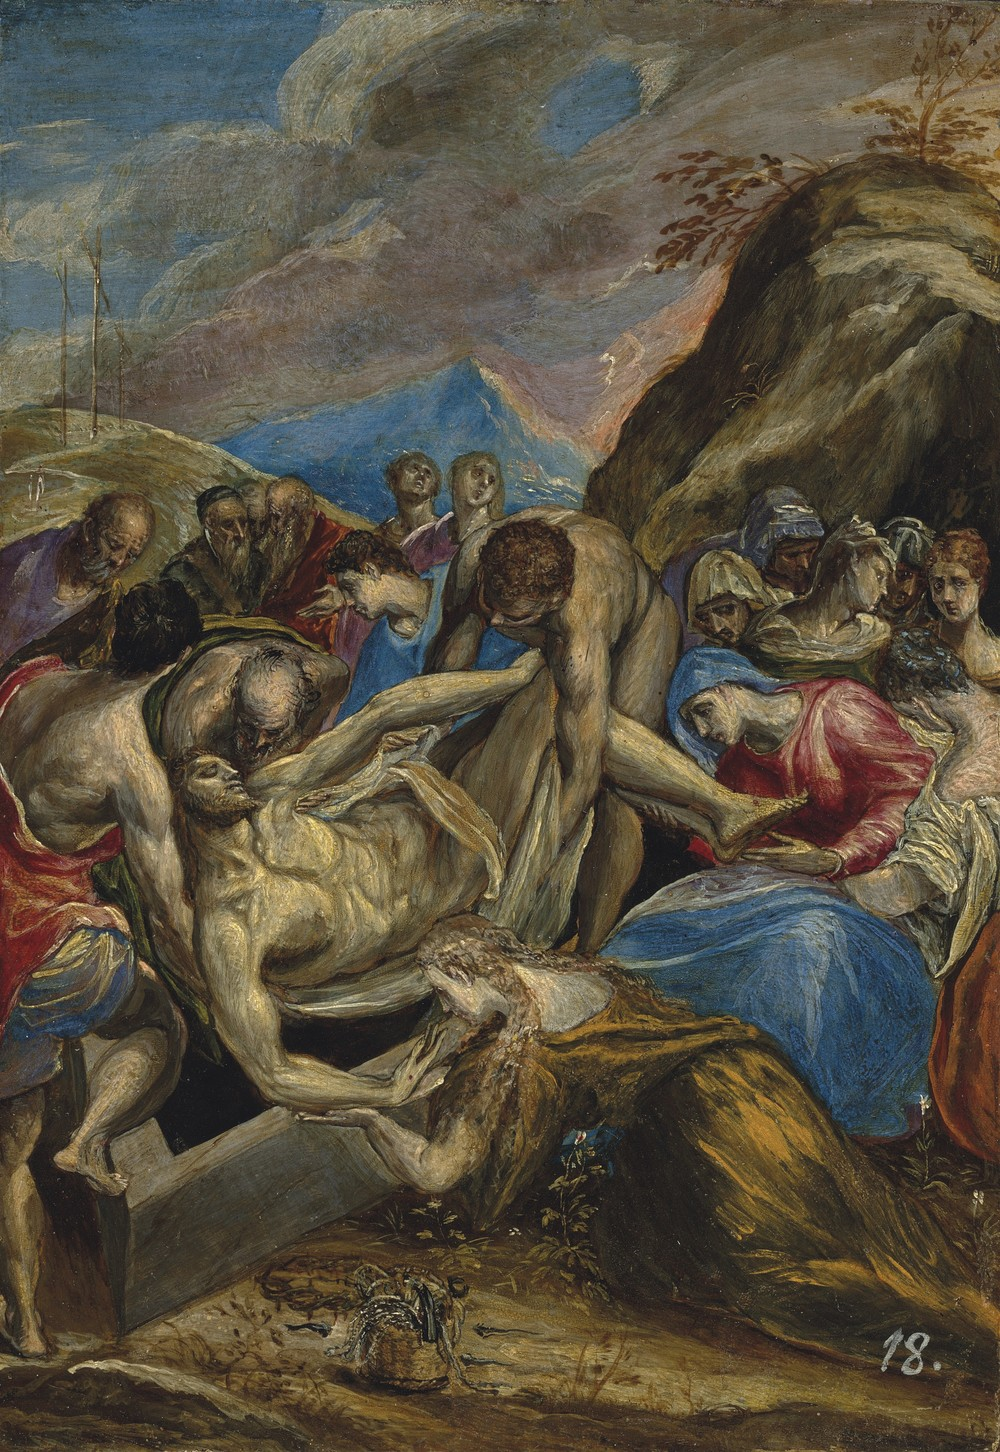 The Entombment of Christ is the work of famous Spanish Renaissance artist Doménikos Theotokópoulos (1541-1614), widely known as El Greco. The nickname was used to denote his Greek heritage and Spanish citizenship.  This piece is one of El Greco's smaller works, and is just 11 x 7 5/8 inches. It comes to auction from a private collection in Europe. Estimate: $4 million to $6 million.  (PHOTO CREDIT: CHRISTIE'S IMAGES LTD. 2016)